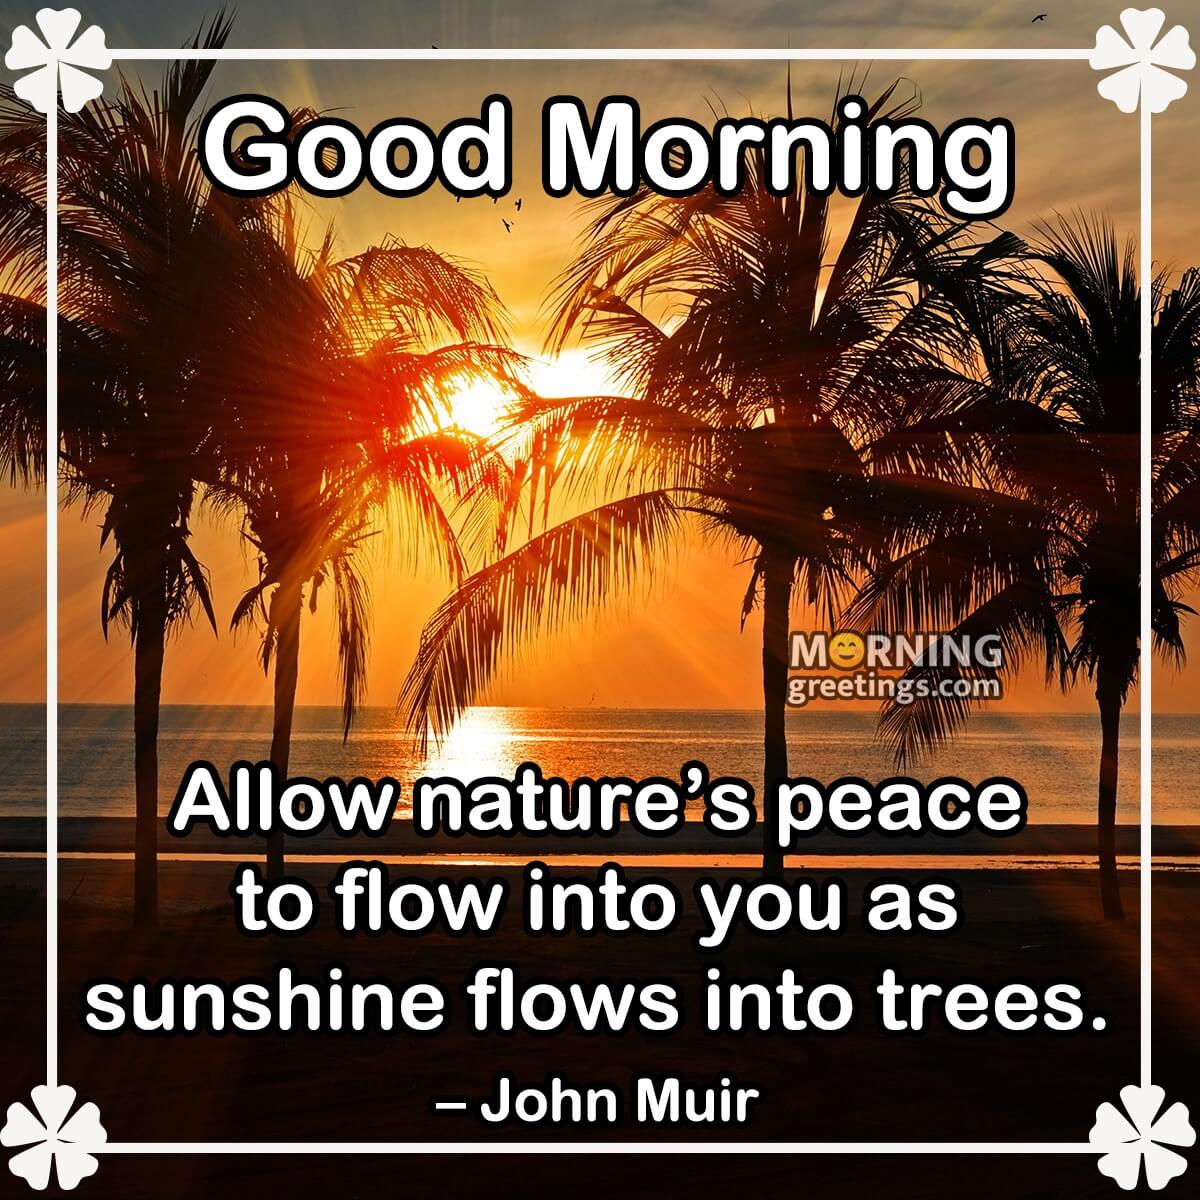 Quotes morning excellent good Good Morning